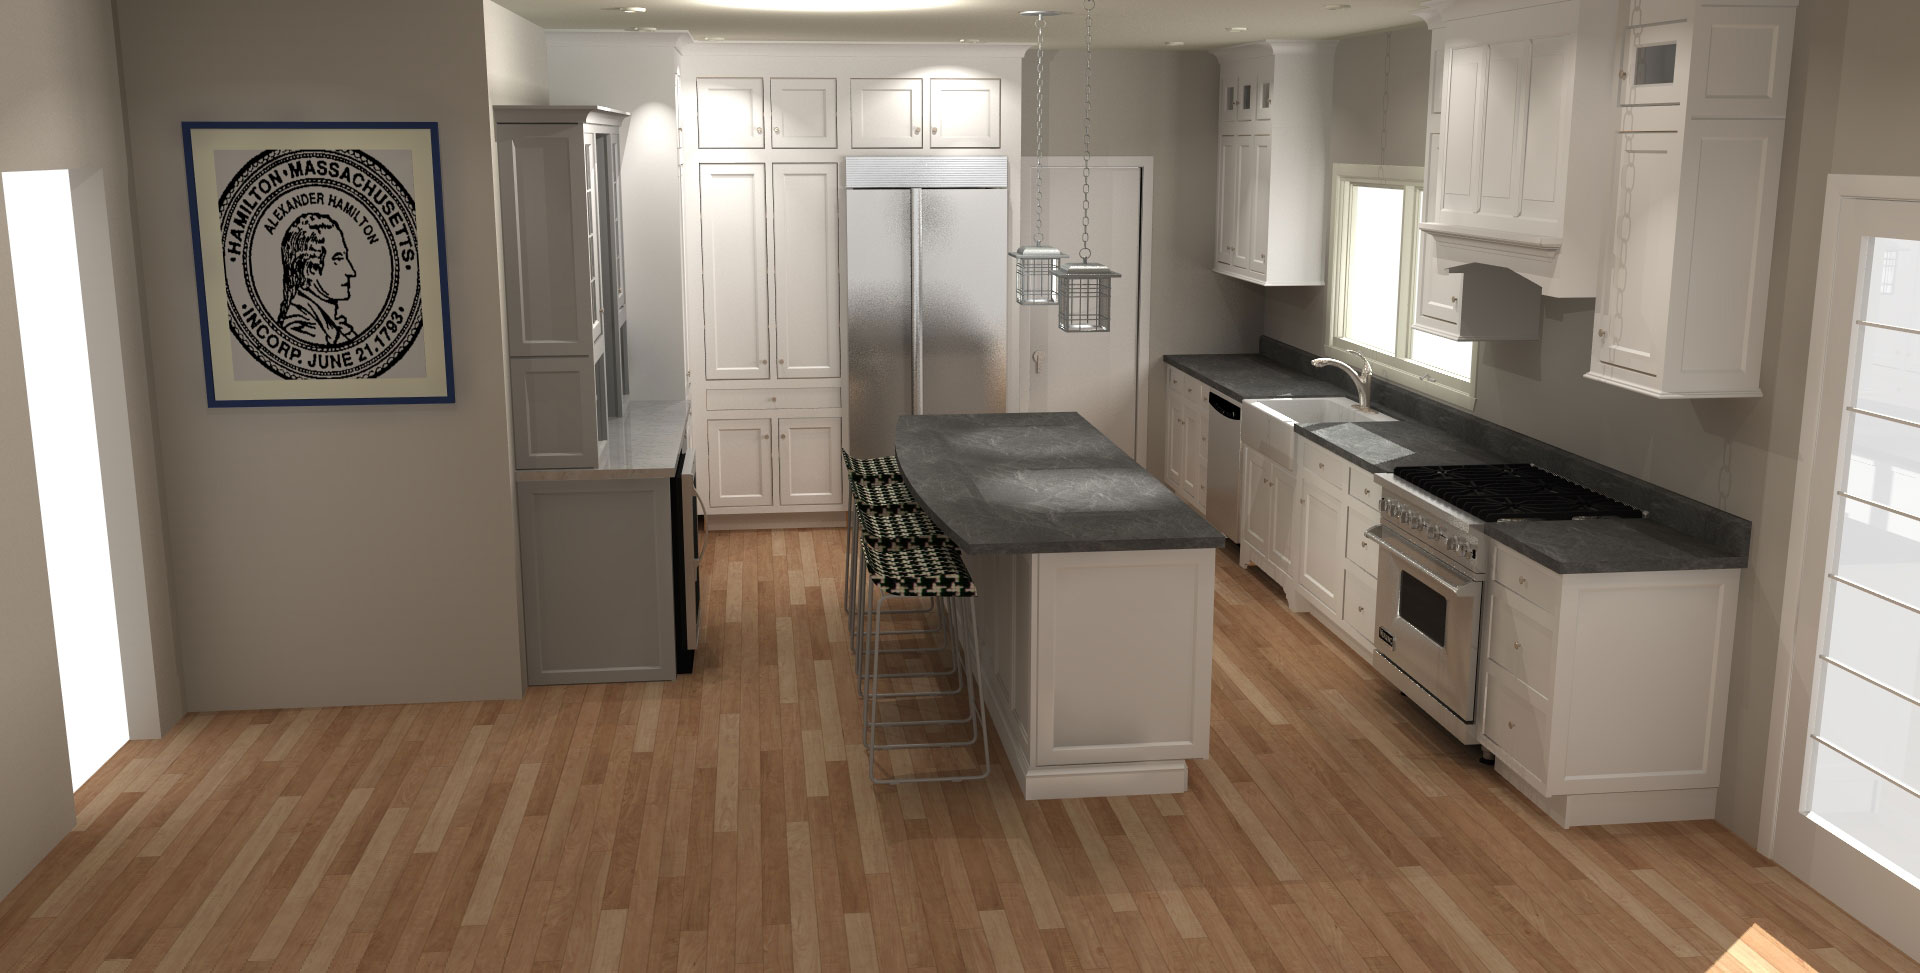 Specialty Kitchensu0027 Preview Images Help You Visualize Your New Space